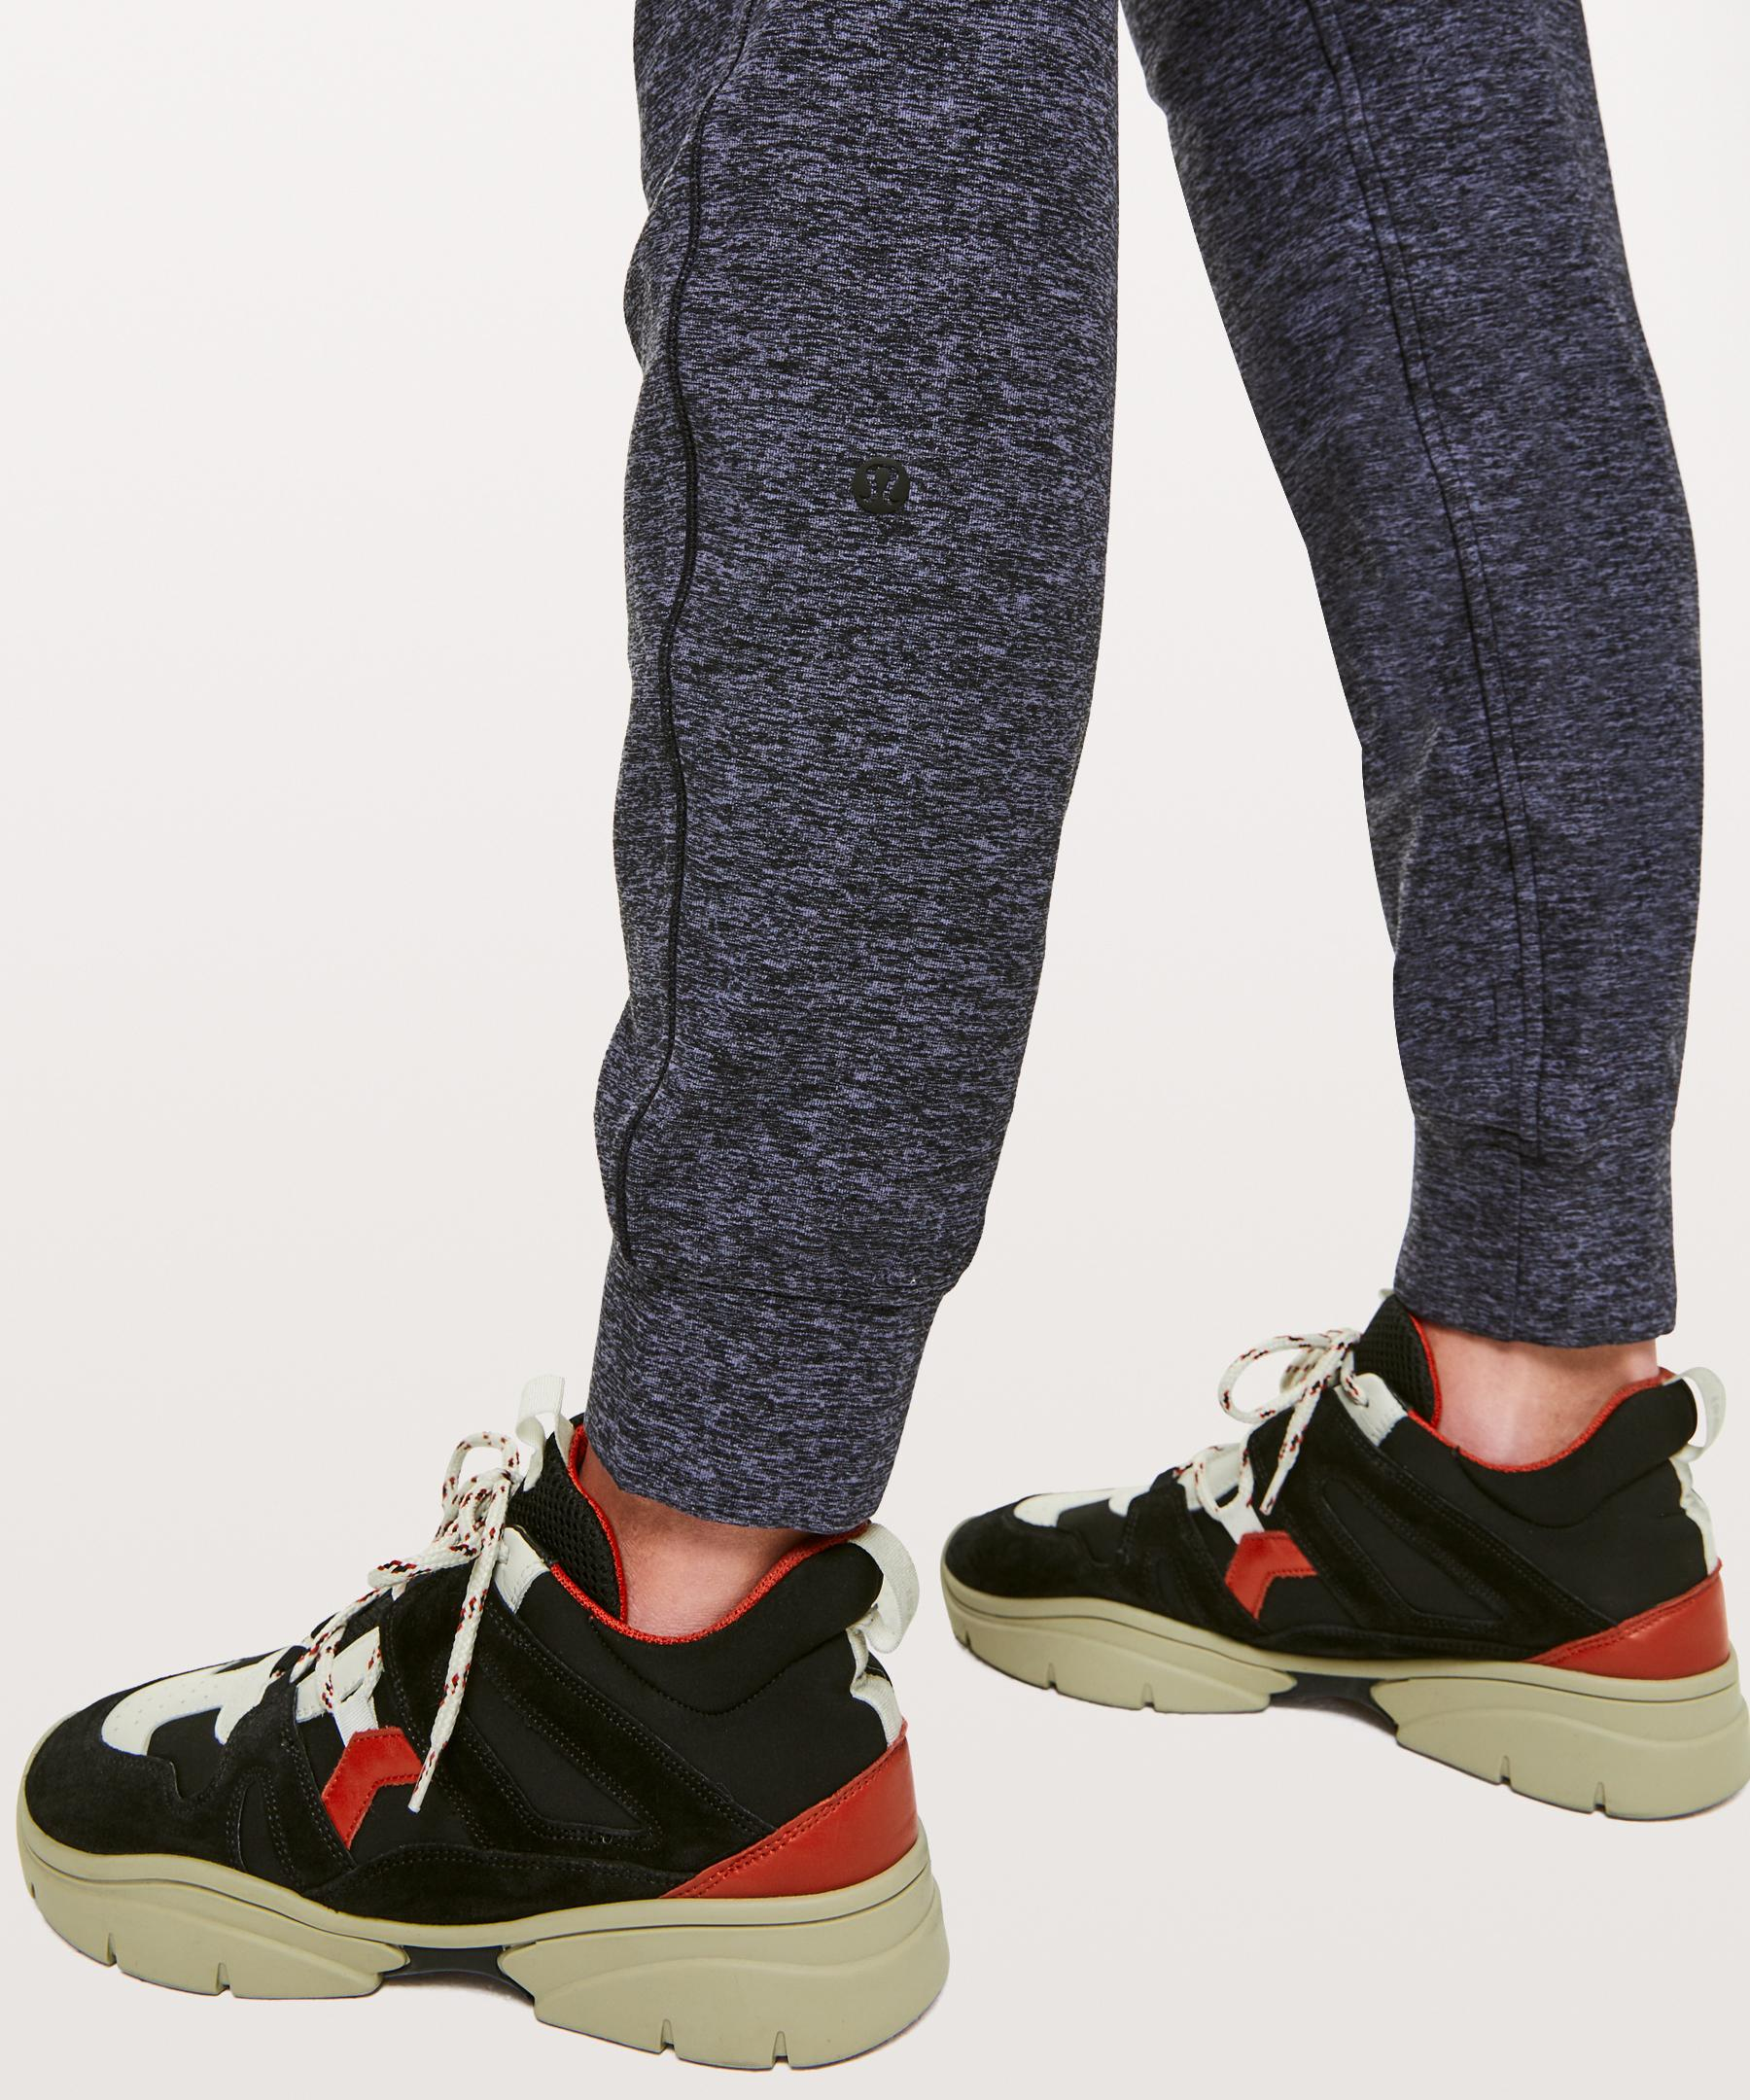 afb8cf33db lululemon athletica - Blue Ready To Rulu Pant *updated 29